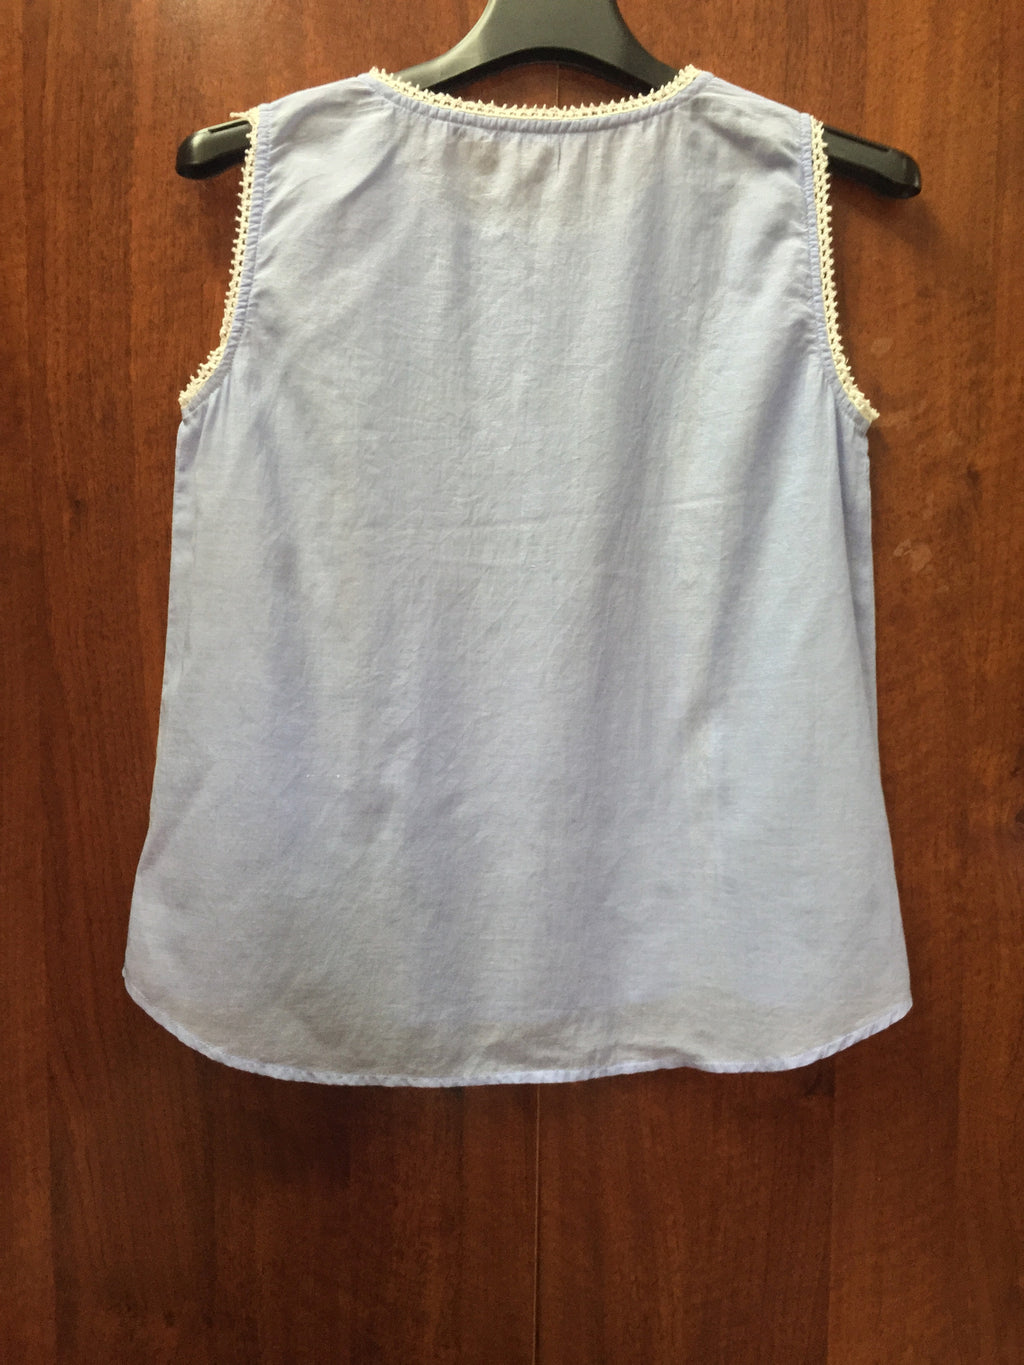 Ink Blue Cotton Sleeveless Top - #FTFY - For The Fun Years